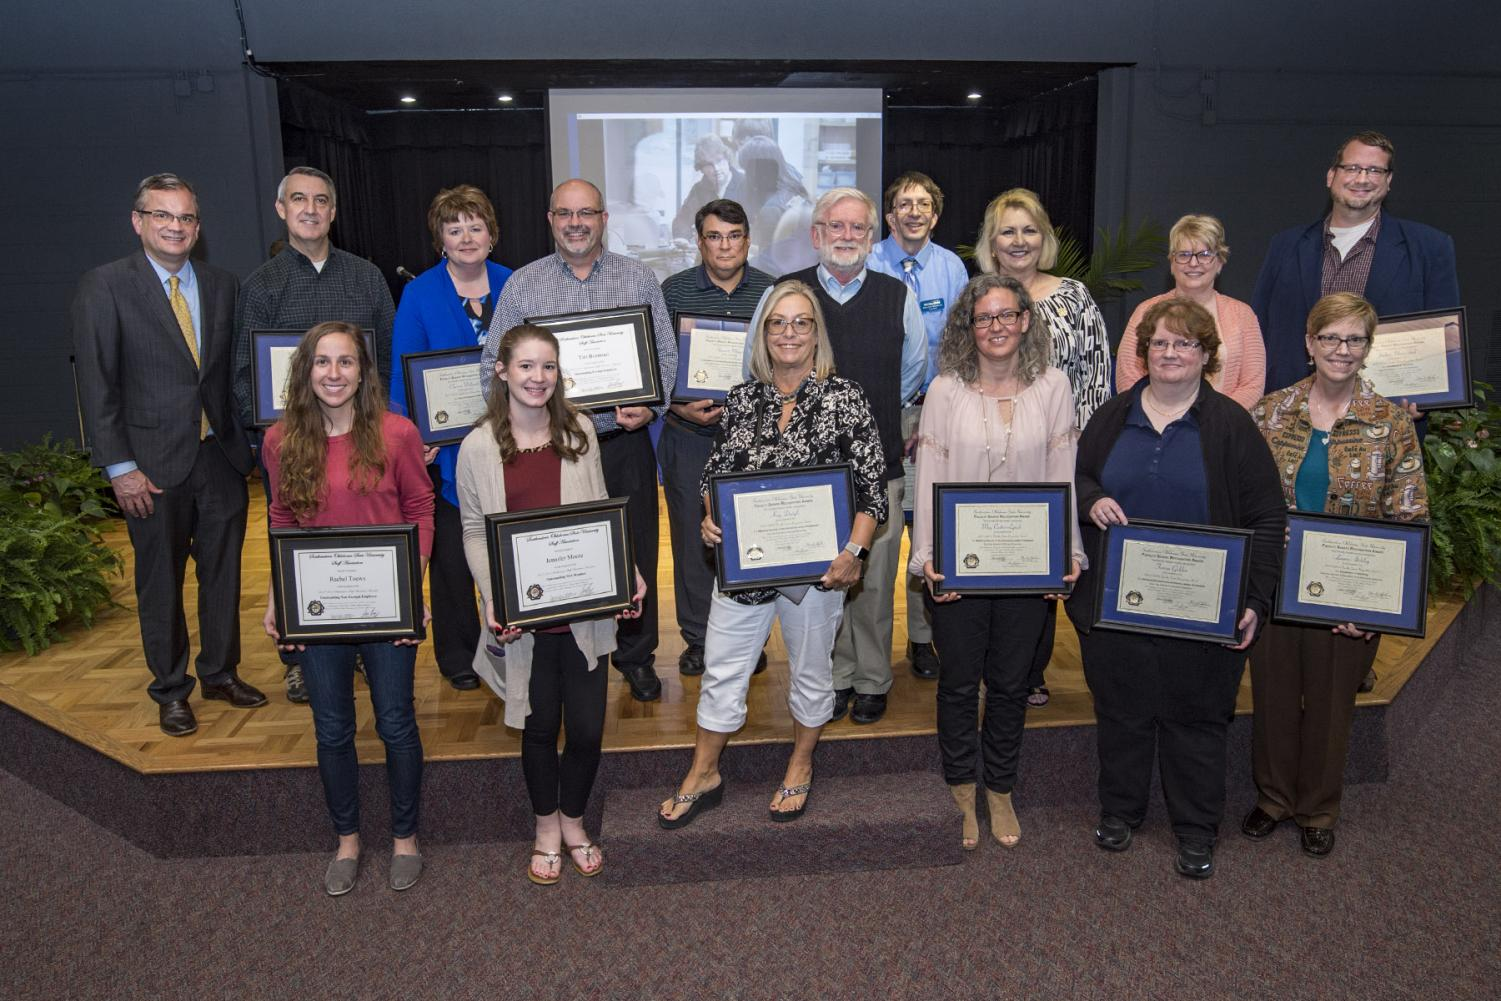 Among the award winners Monday were, front row, left to right,  Rachel Toews, Jennifer Moore, Dr. Kay Daigle, Dr. Meg Cotter-Lynch, Dr. Teresa Golden, and Dr. Laura Atchley. Back row, president Sean Burrage, Dr. Doug Wood, Cherrie Wilmoth, Dr. Tim Boatmun, Dr. Stewart Mayers, Faculty Senate chair Dr. Daniel Althoff, Brandon Burnette, Kay Barber, Dr. Loide Wasmund, and Dr. Joshua Nannestad.